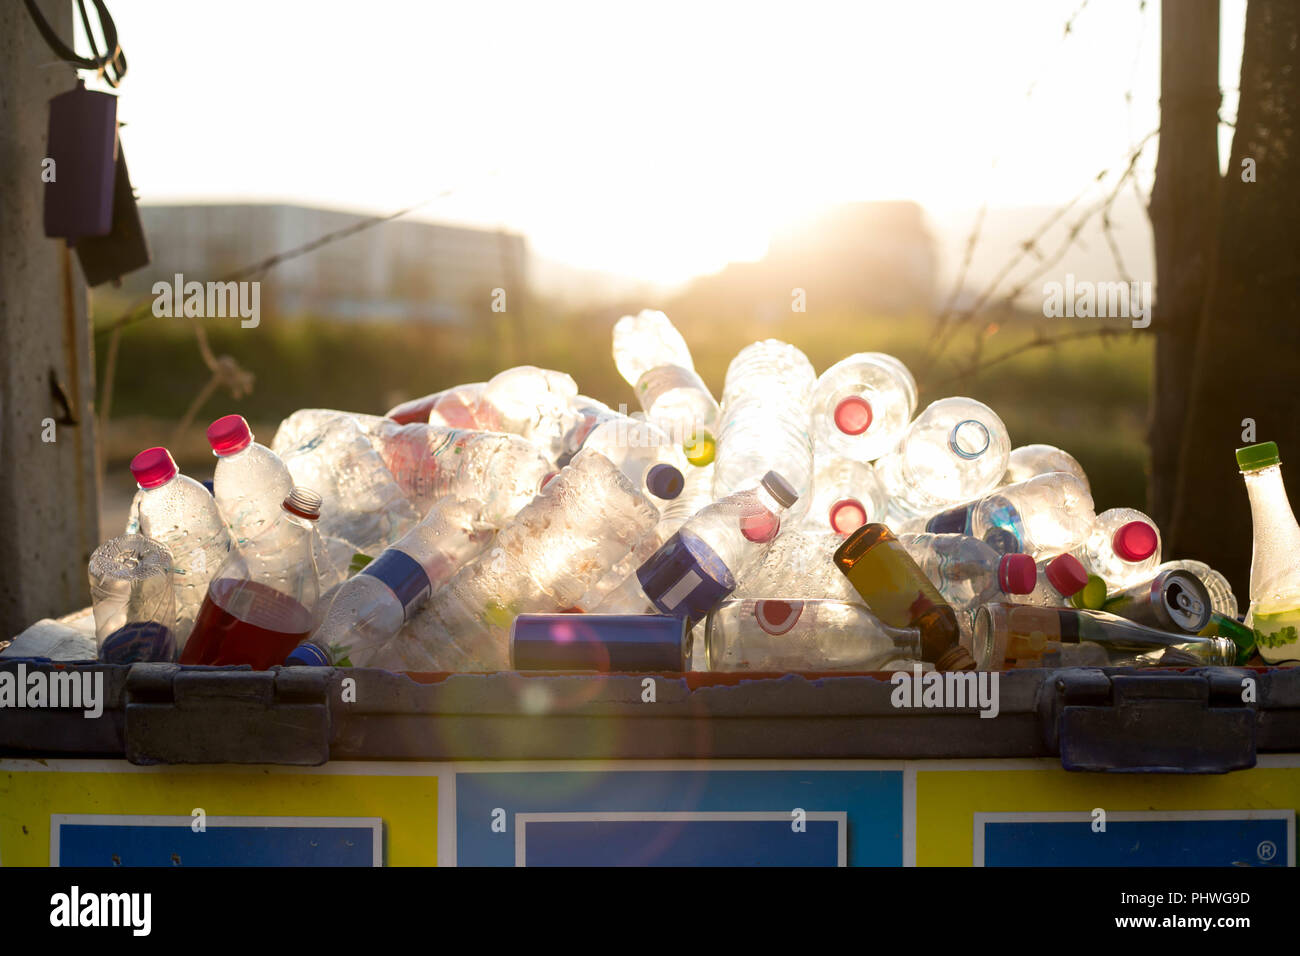 Recyclable garbage of glass and plastic bottles  - Stock Image